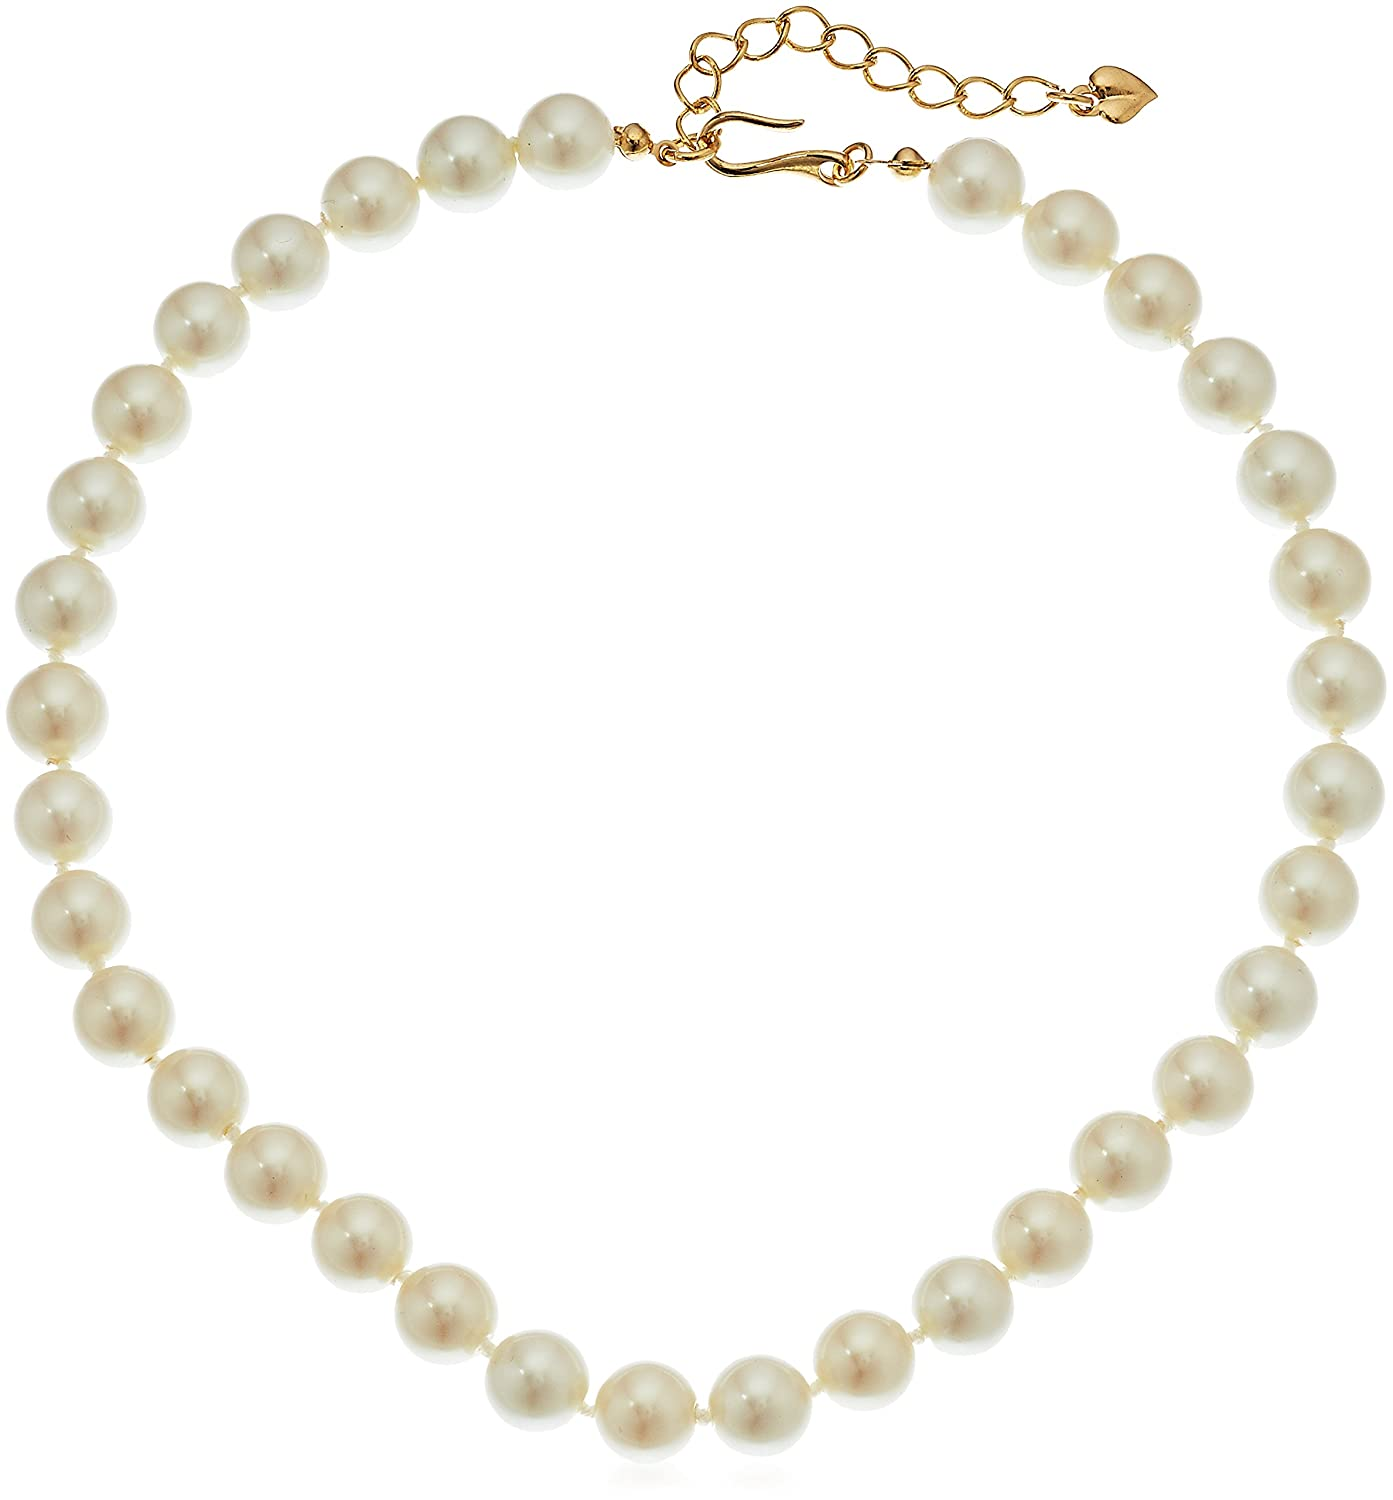 "Amazon.com: Carolee 10 mm Adjustable Pearl Strand Necklace, 16"" + 2""  Extender: Jewelry"